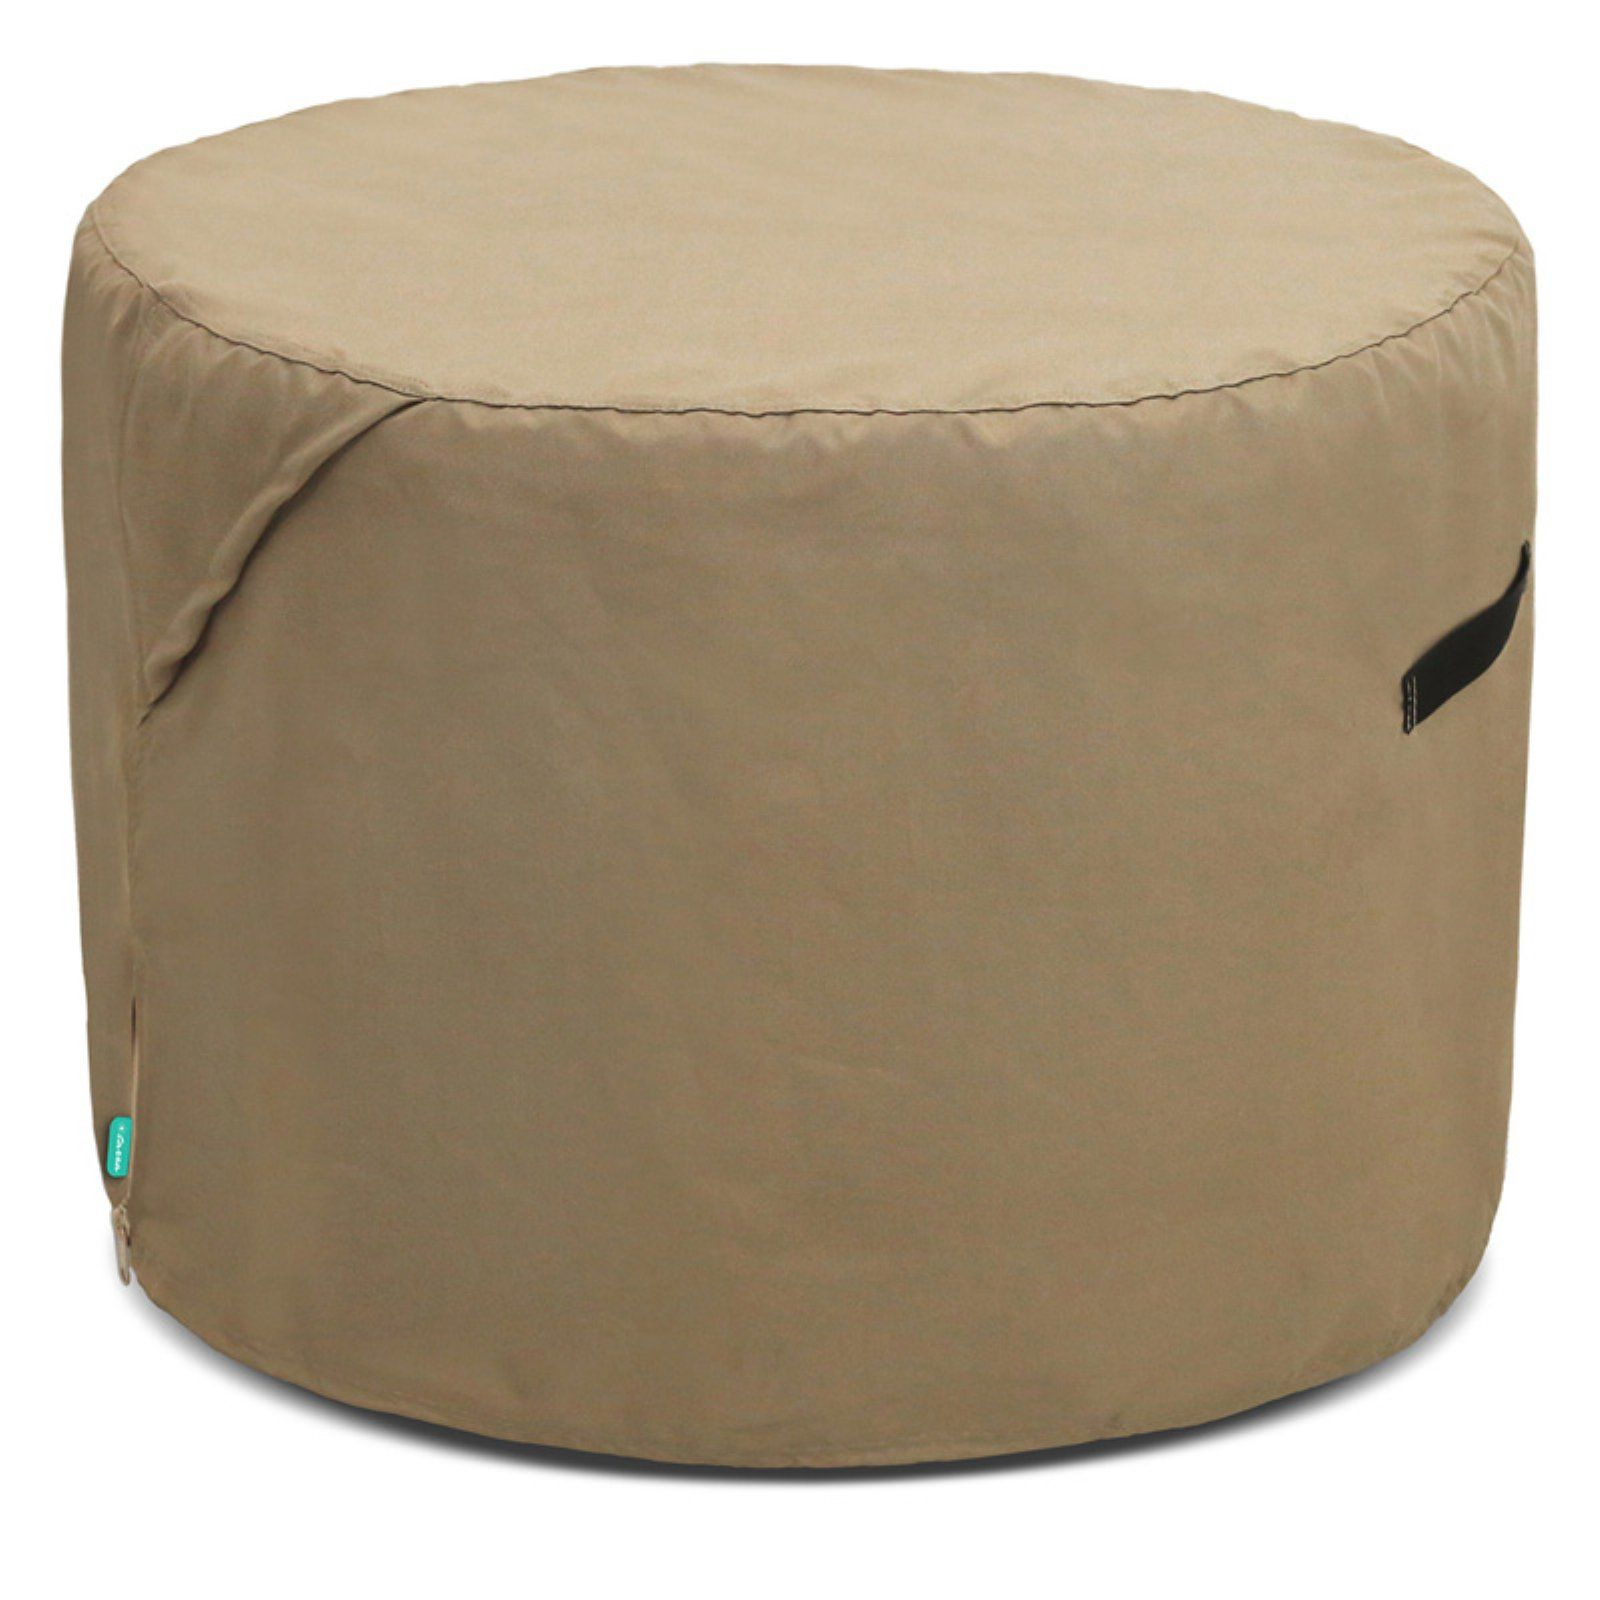 Tarra Home Universal Outdoor Ufctp2618pt Patio Round Table Cover